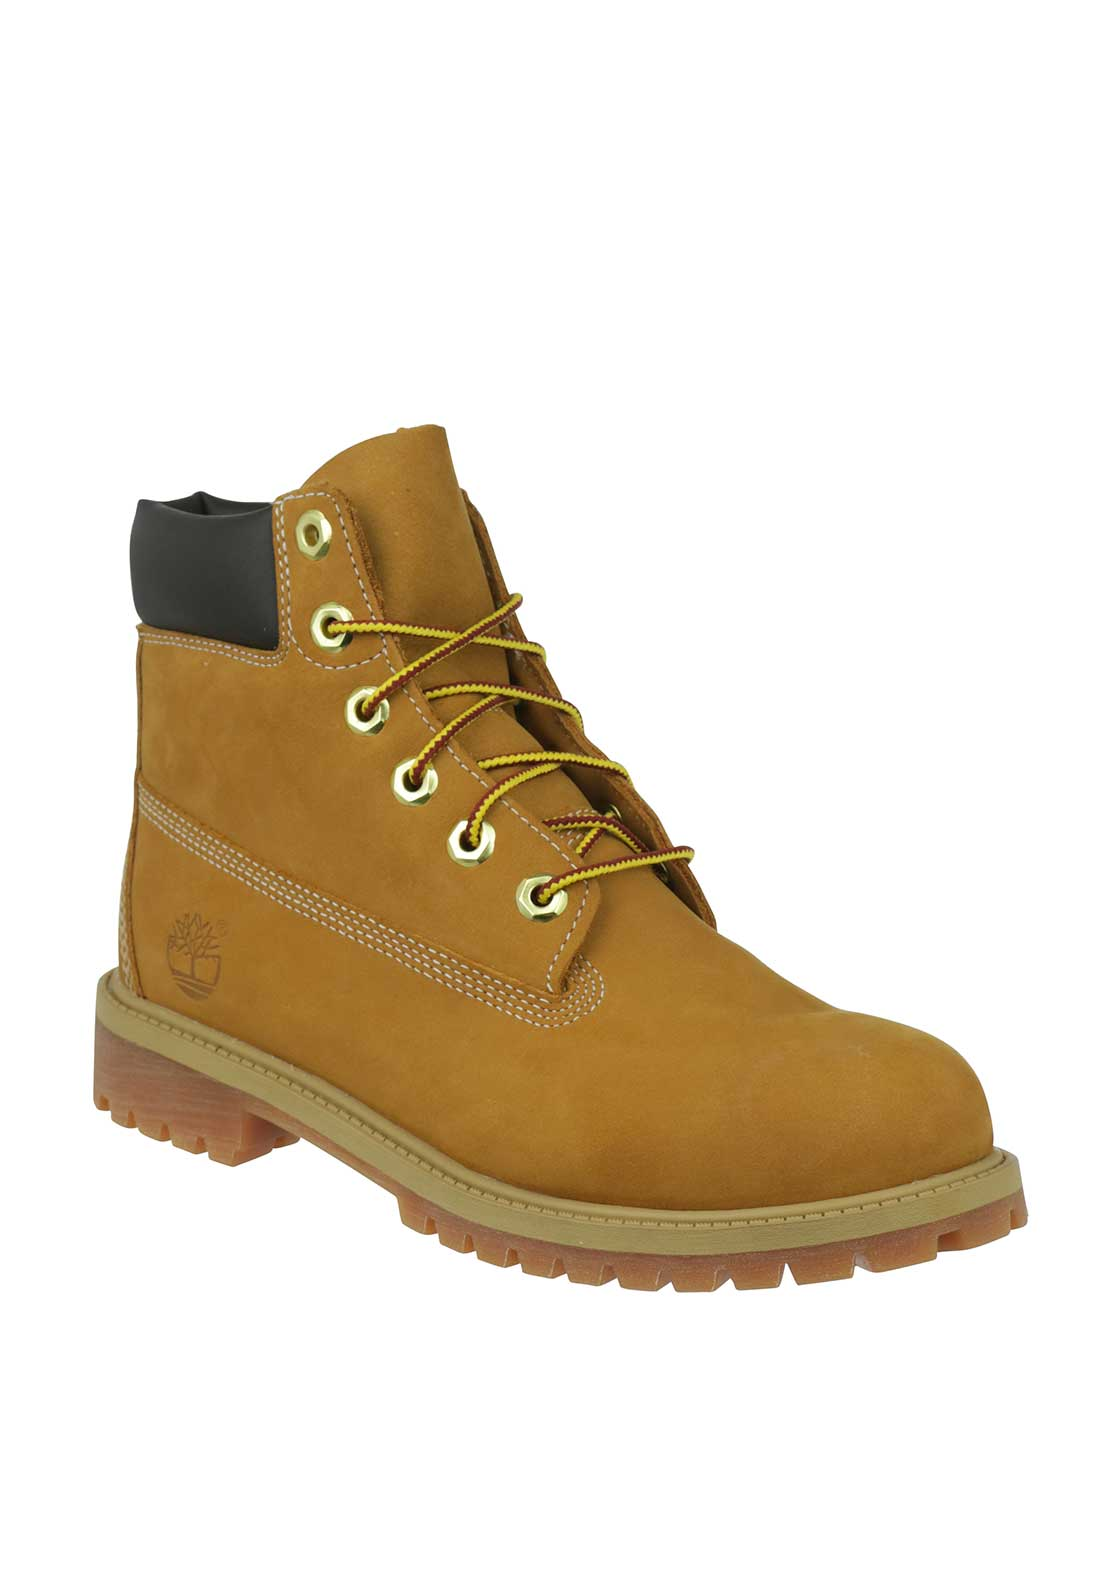 Timberland Boys Icon Boots, Tan